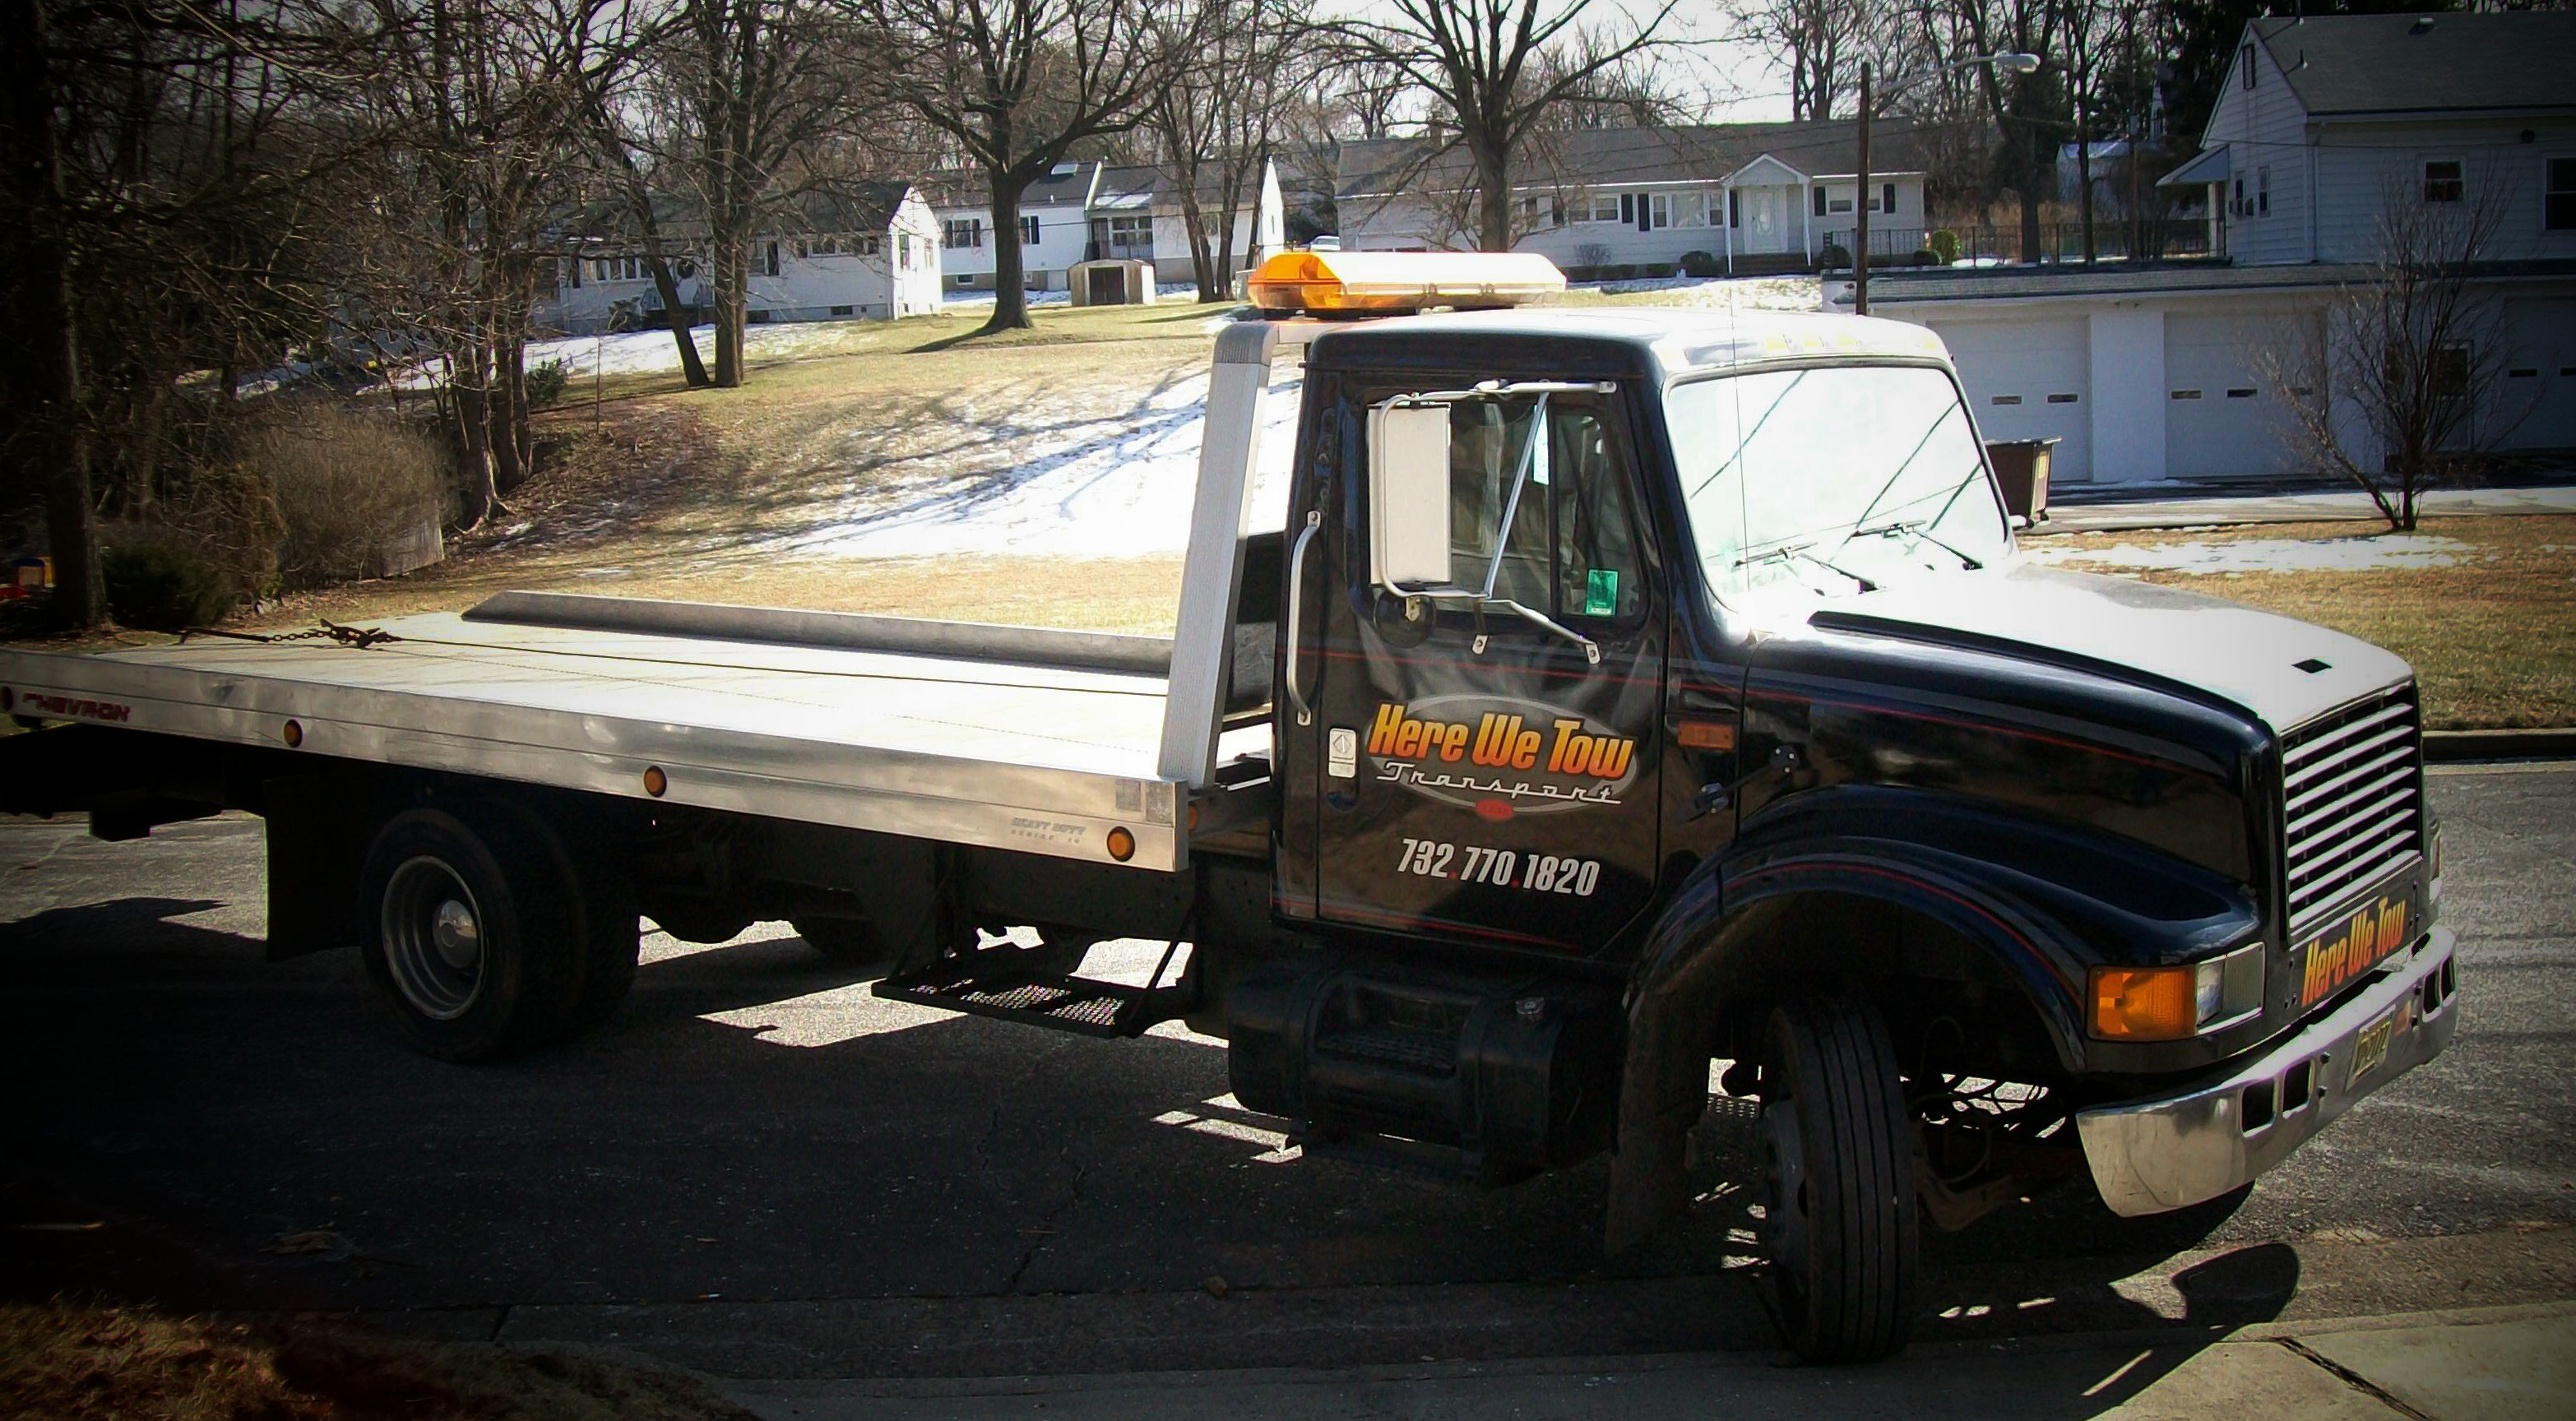 Here We Tow Transport Towing Company Images